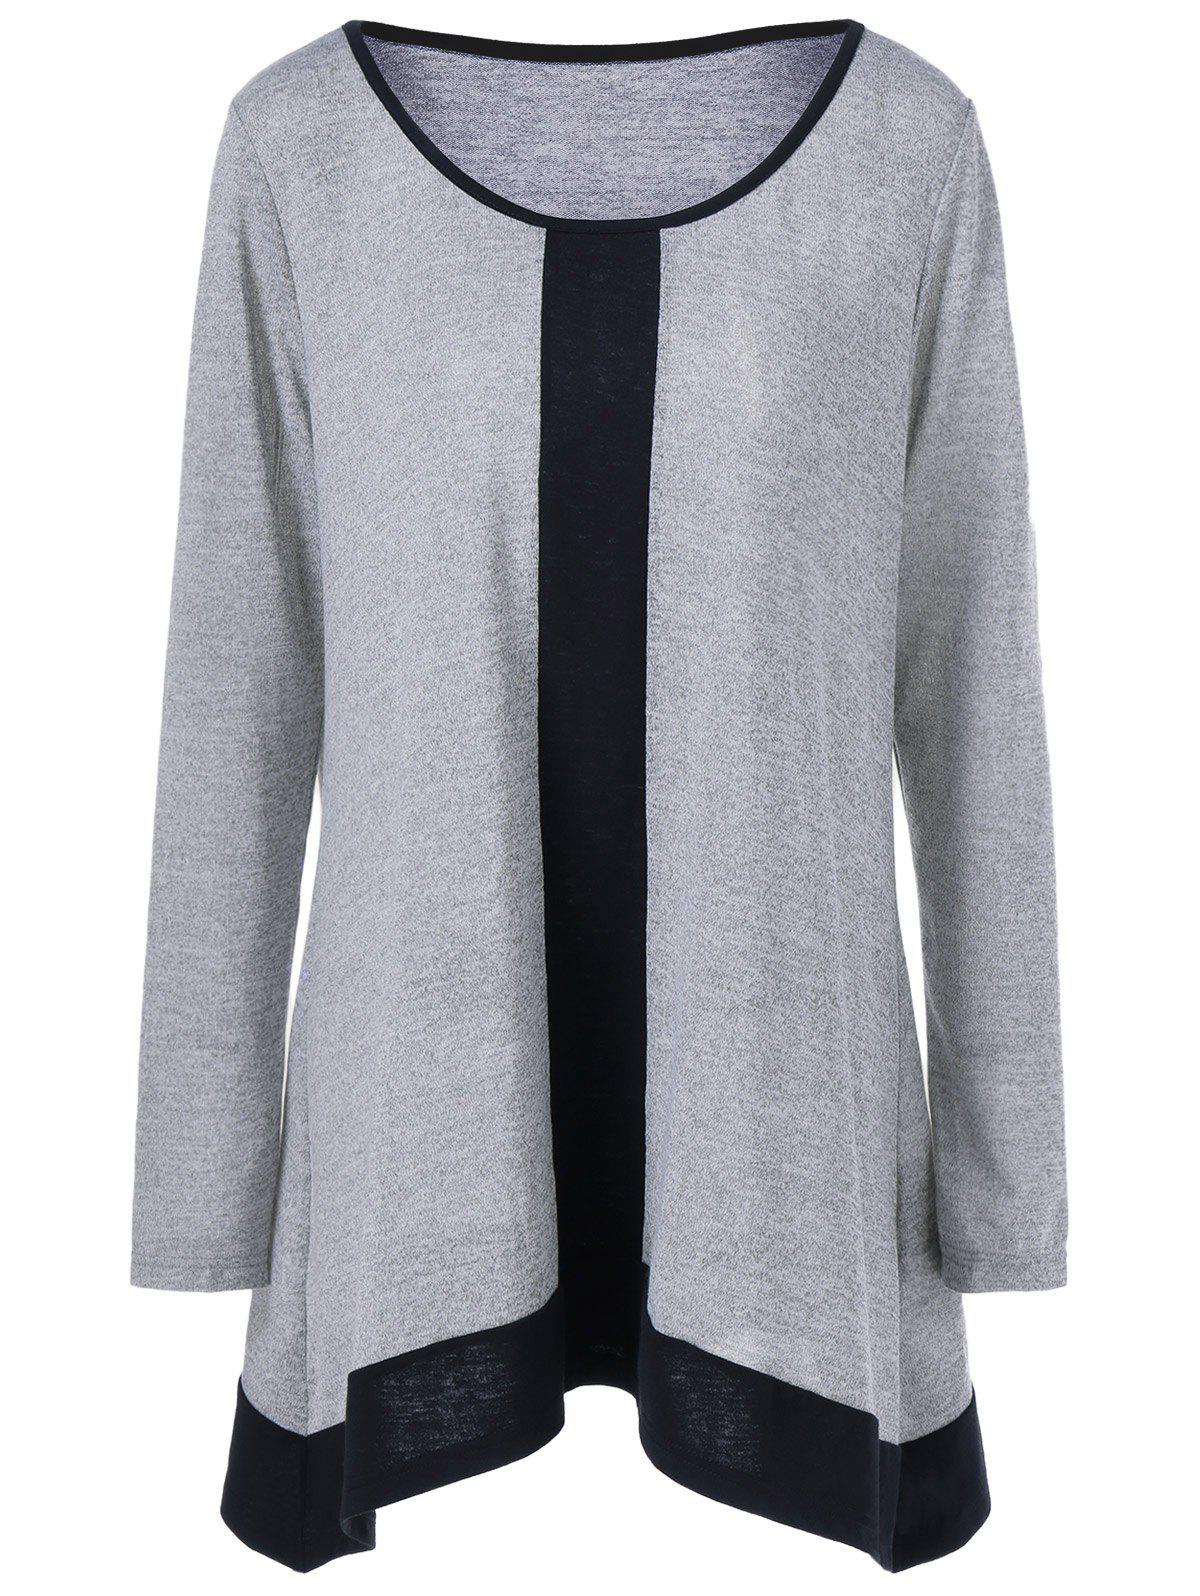 Plus Size Contrast Trim T-ShirtWOMEN<br><br>Size: XL; Color: LIGHT GREY; Material: Polyester,Spandex; Shirt Length: Long; Sleeve Length: Full; Collar: Scoop Neck; Style: Casual; Season: Fall,Spring; Pattern Type: Solid; Weight: 0.390kg; Package Contents: 1 x T-Shirt;